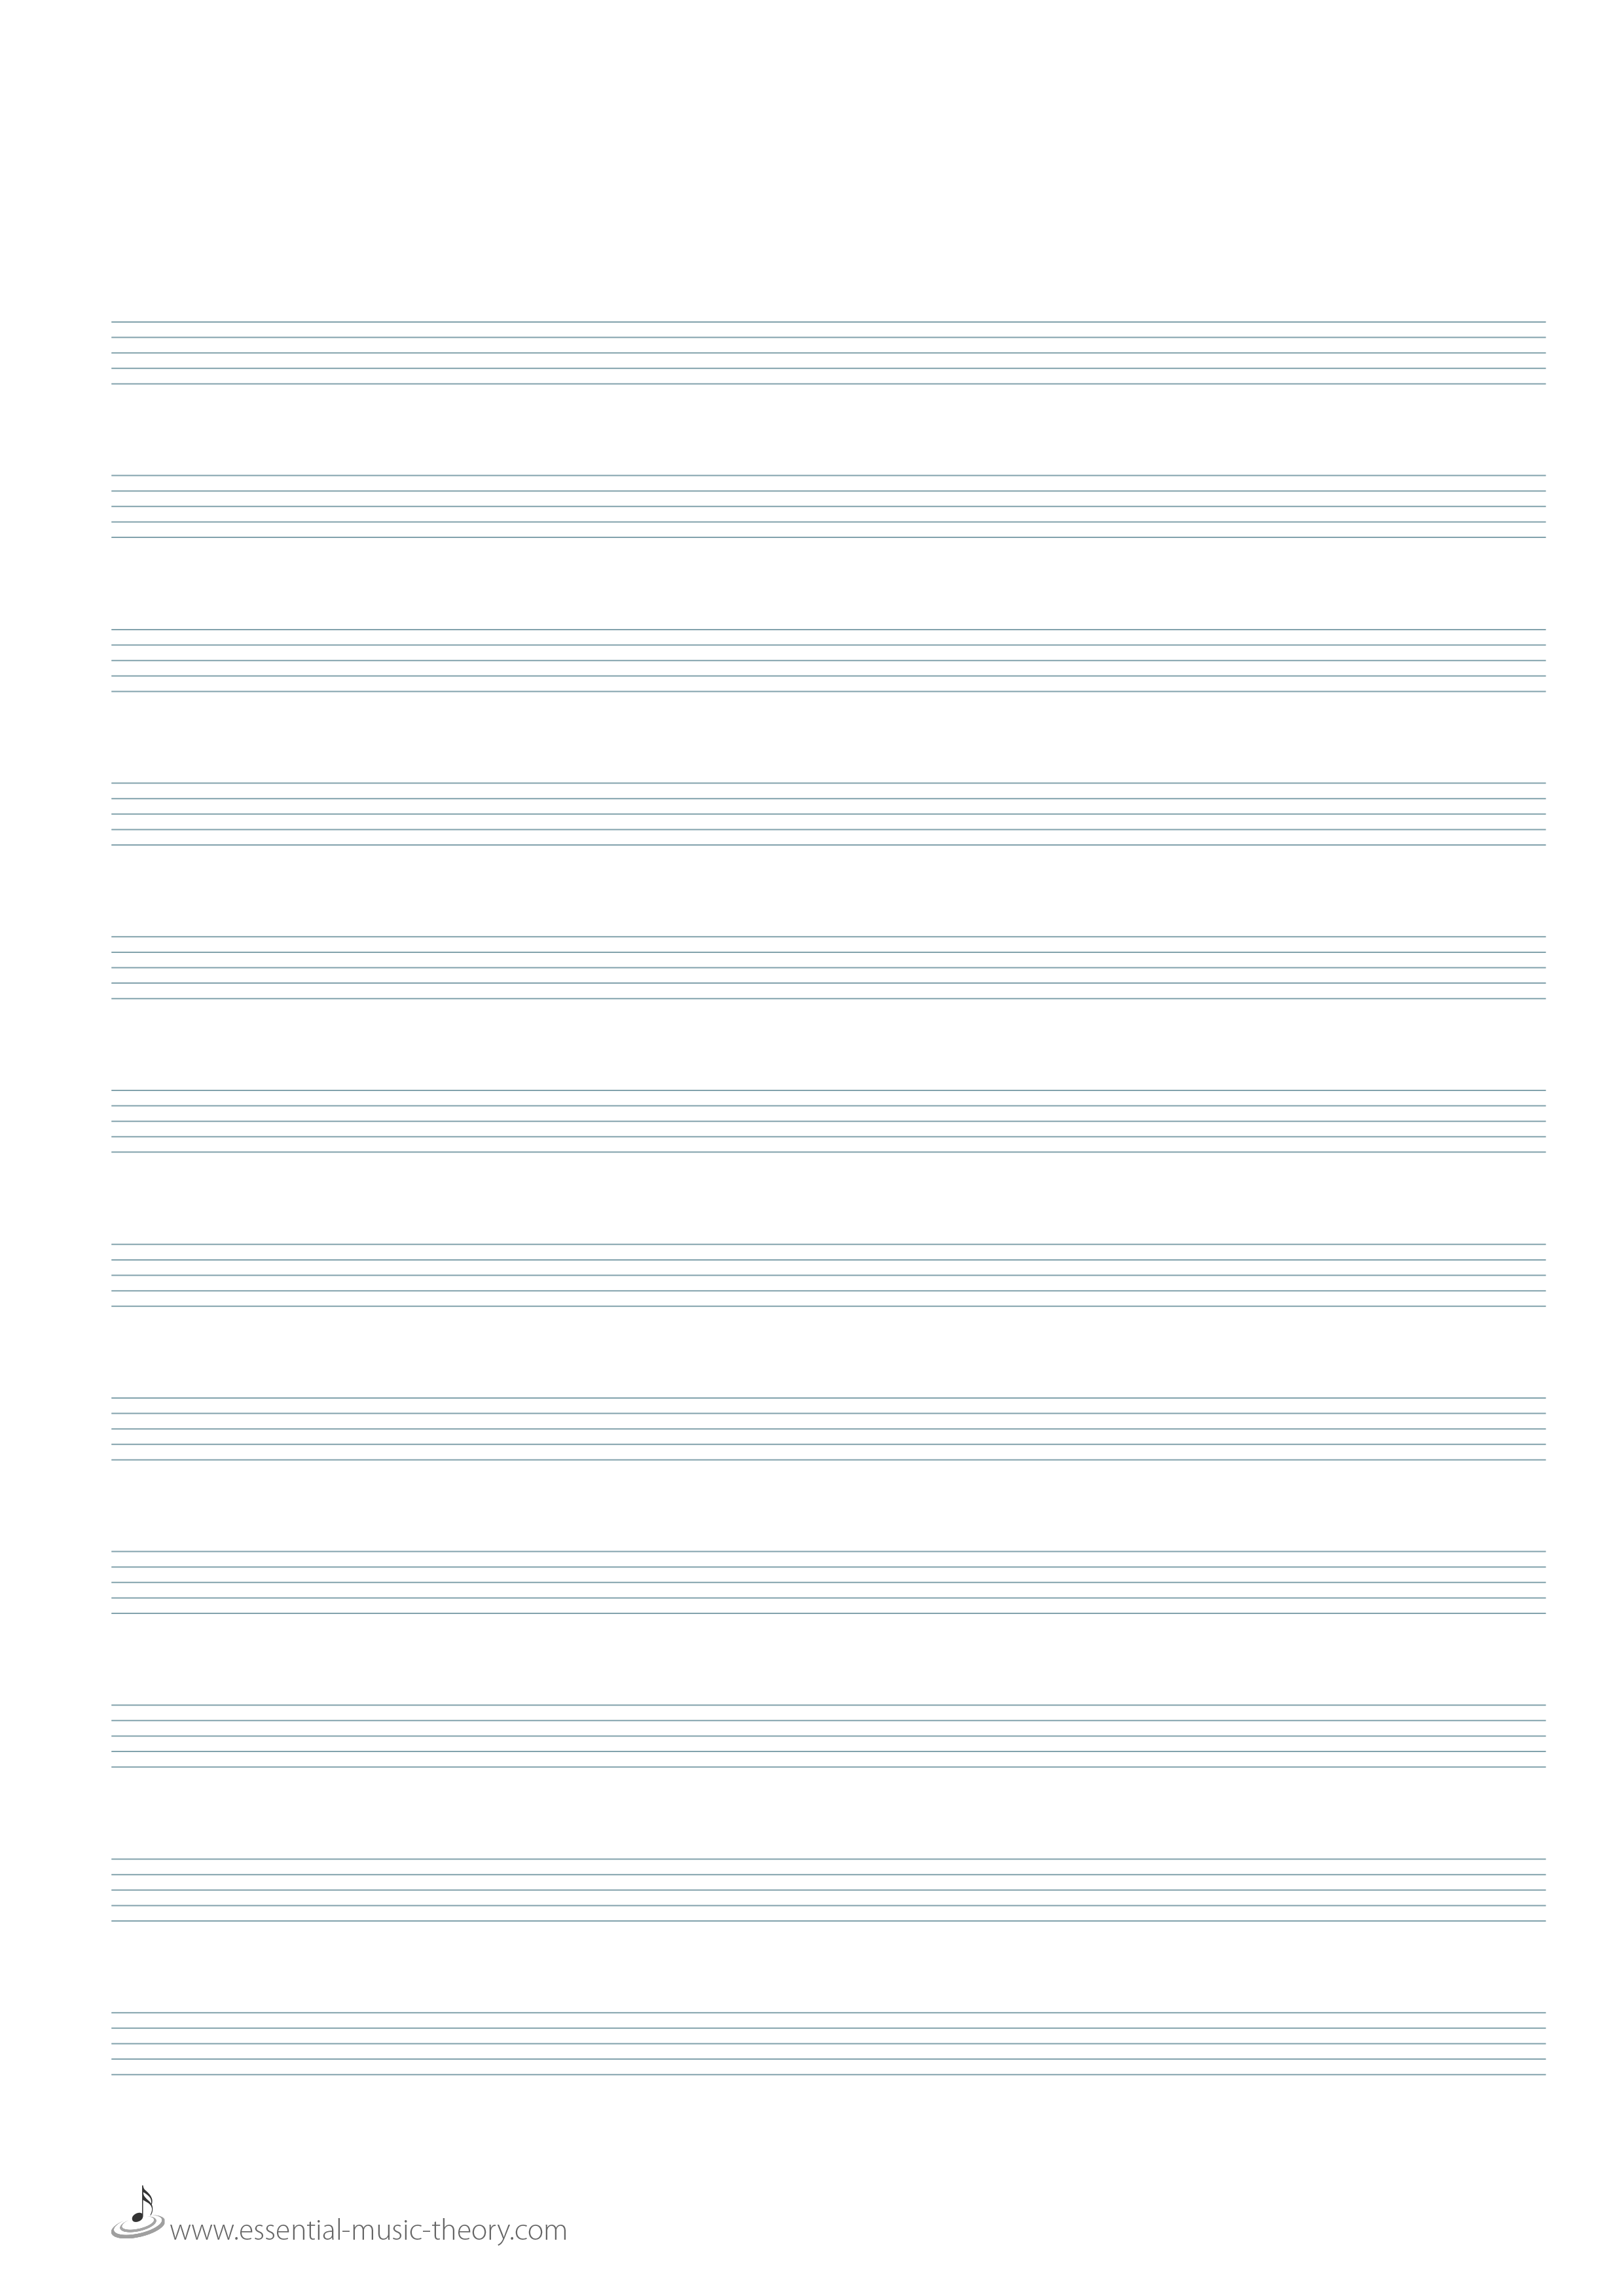 Blank Manuscript Paper – Blank Sheet of Paper with Lines